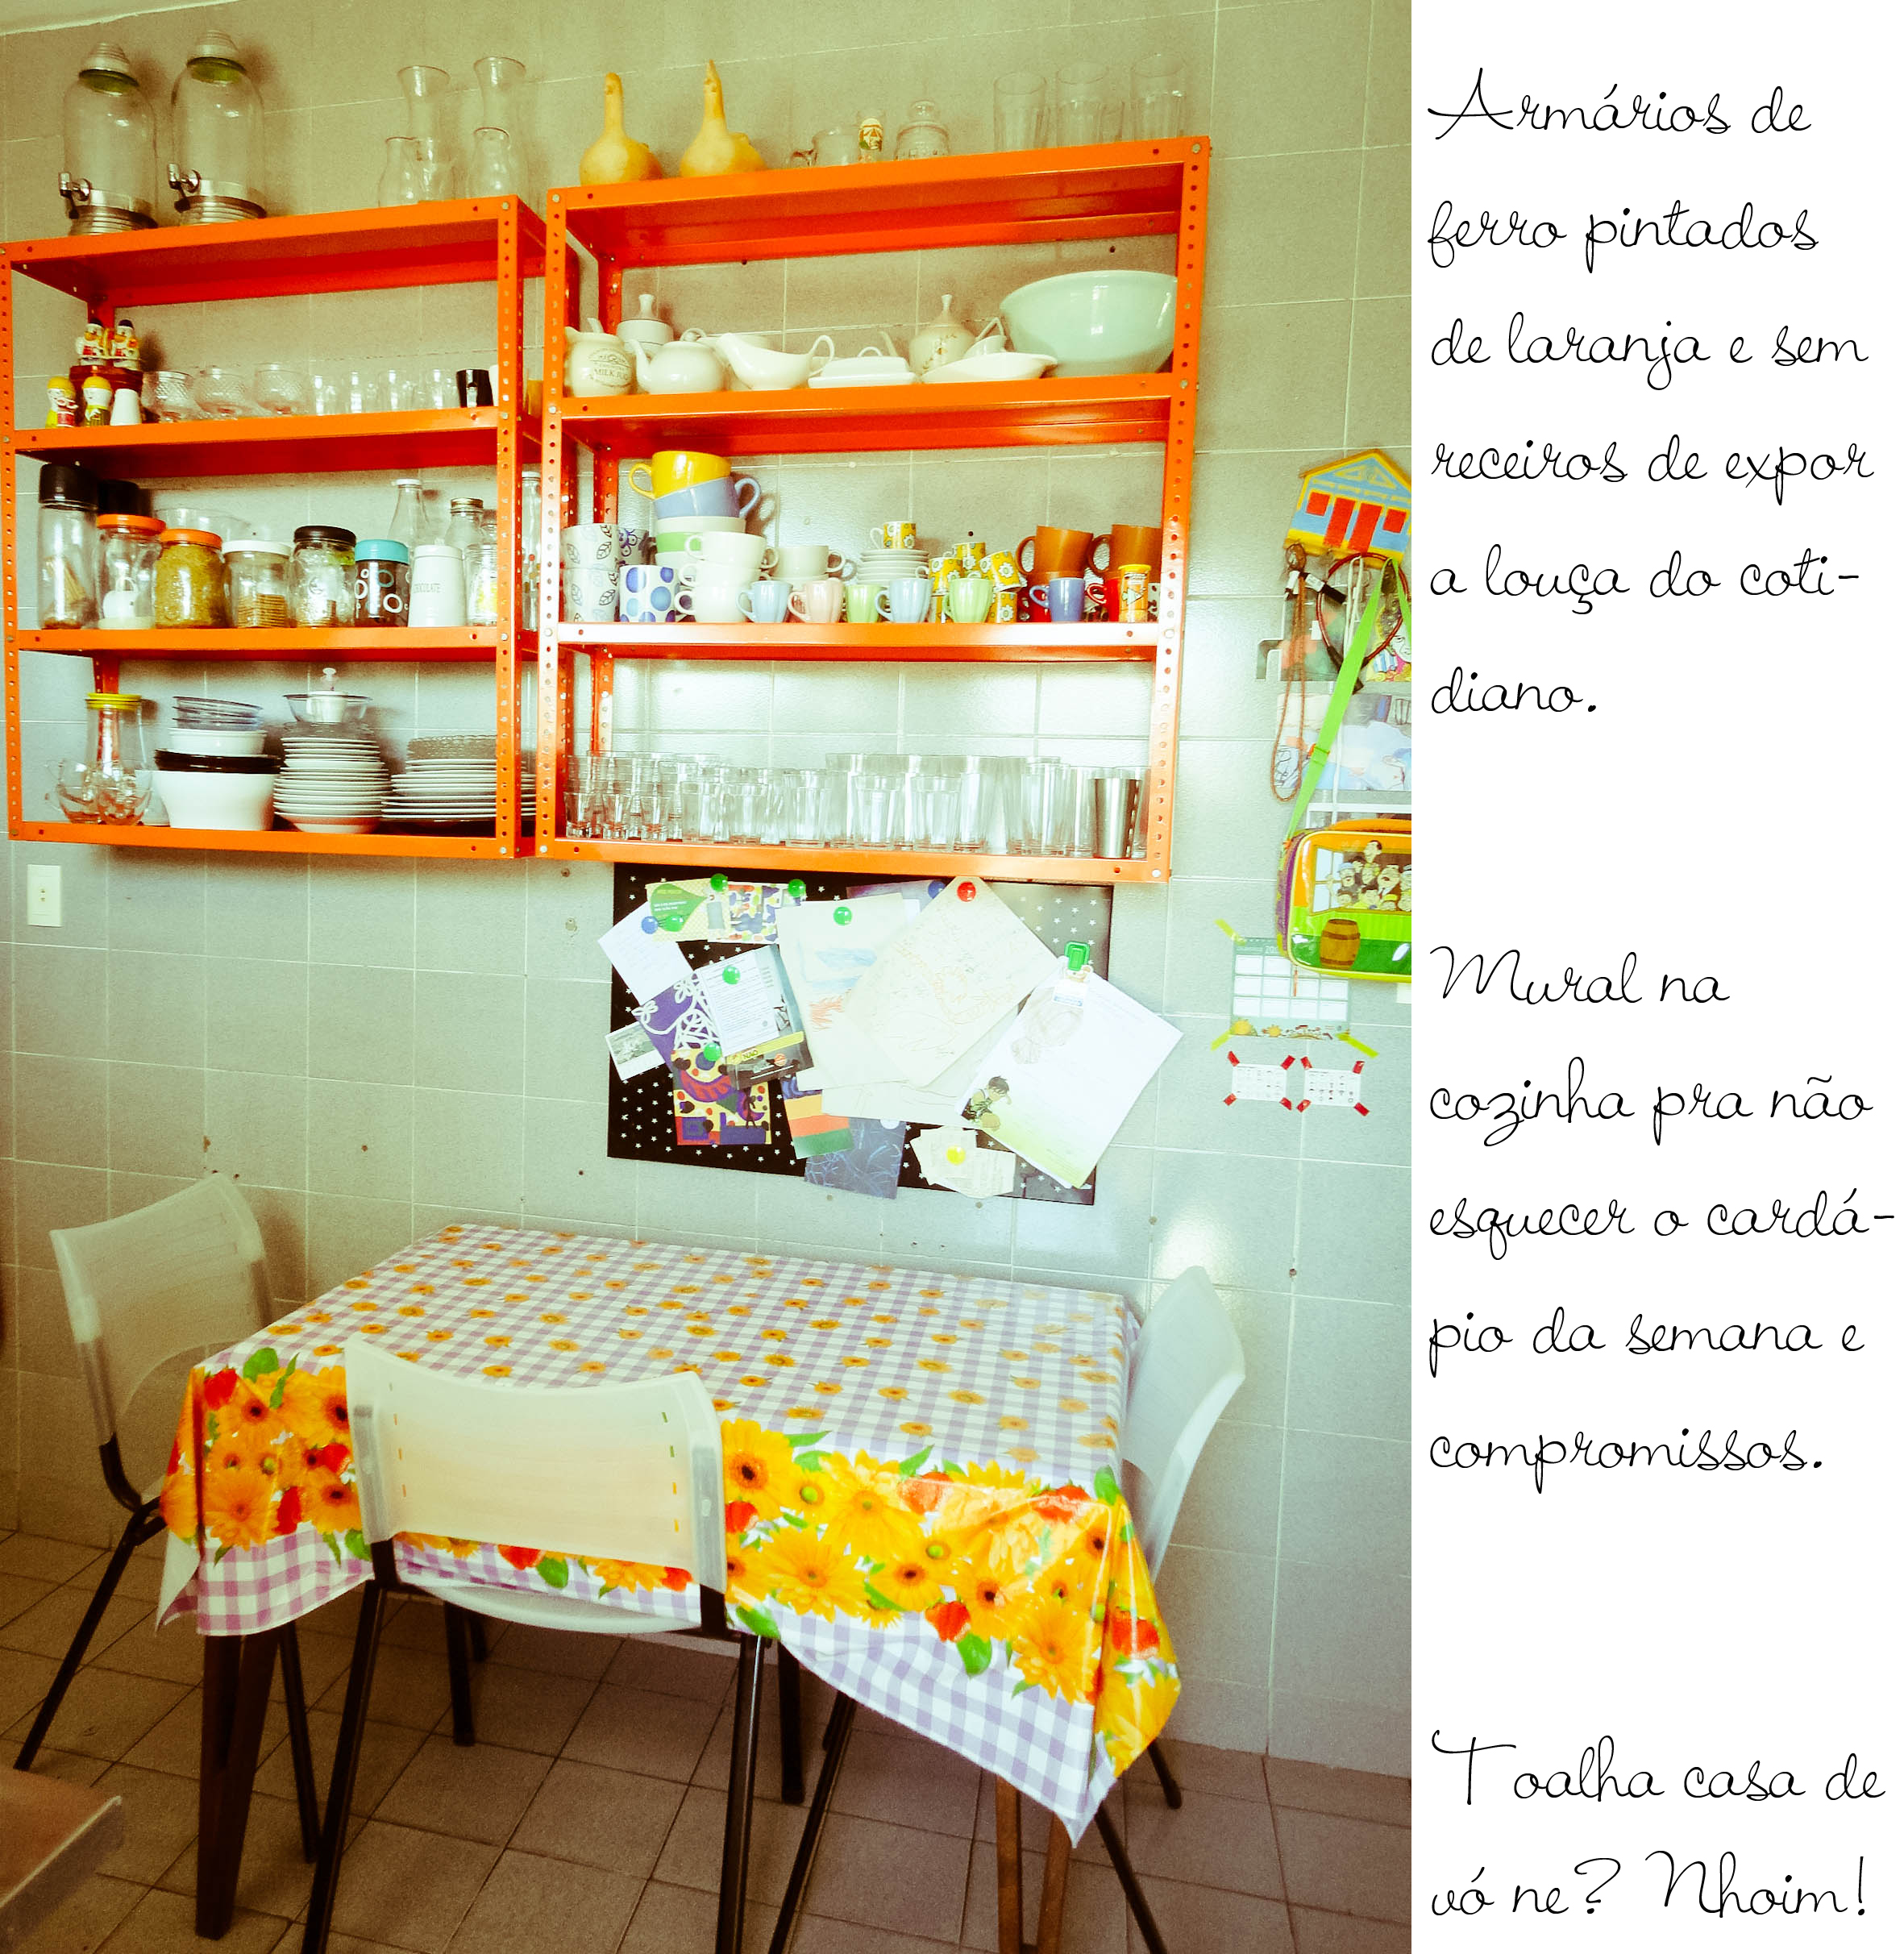 related pictures decora o cozinha apartamento decorar apartamentos Car  #C82503 2362 2424